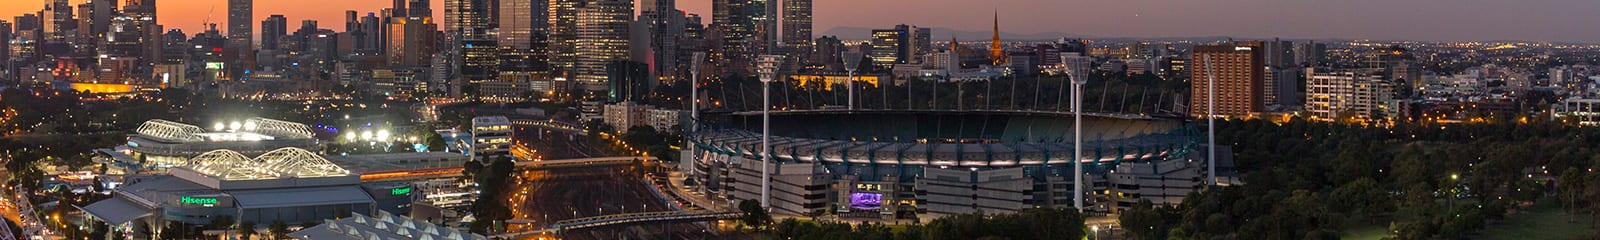 Picture of the MCG at sunset